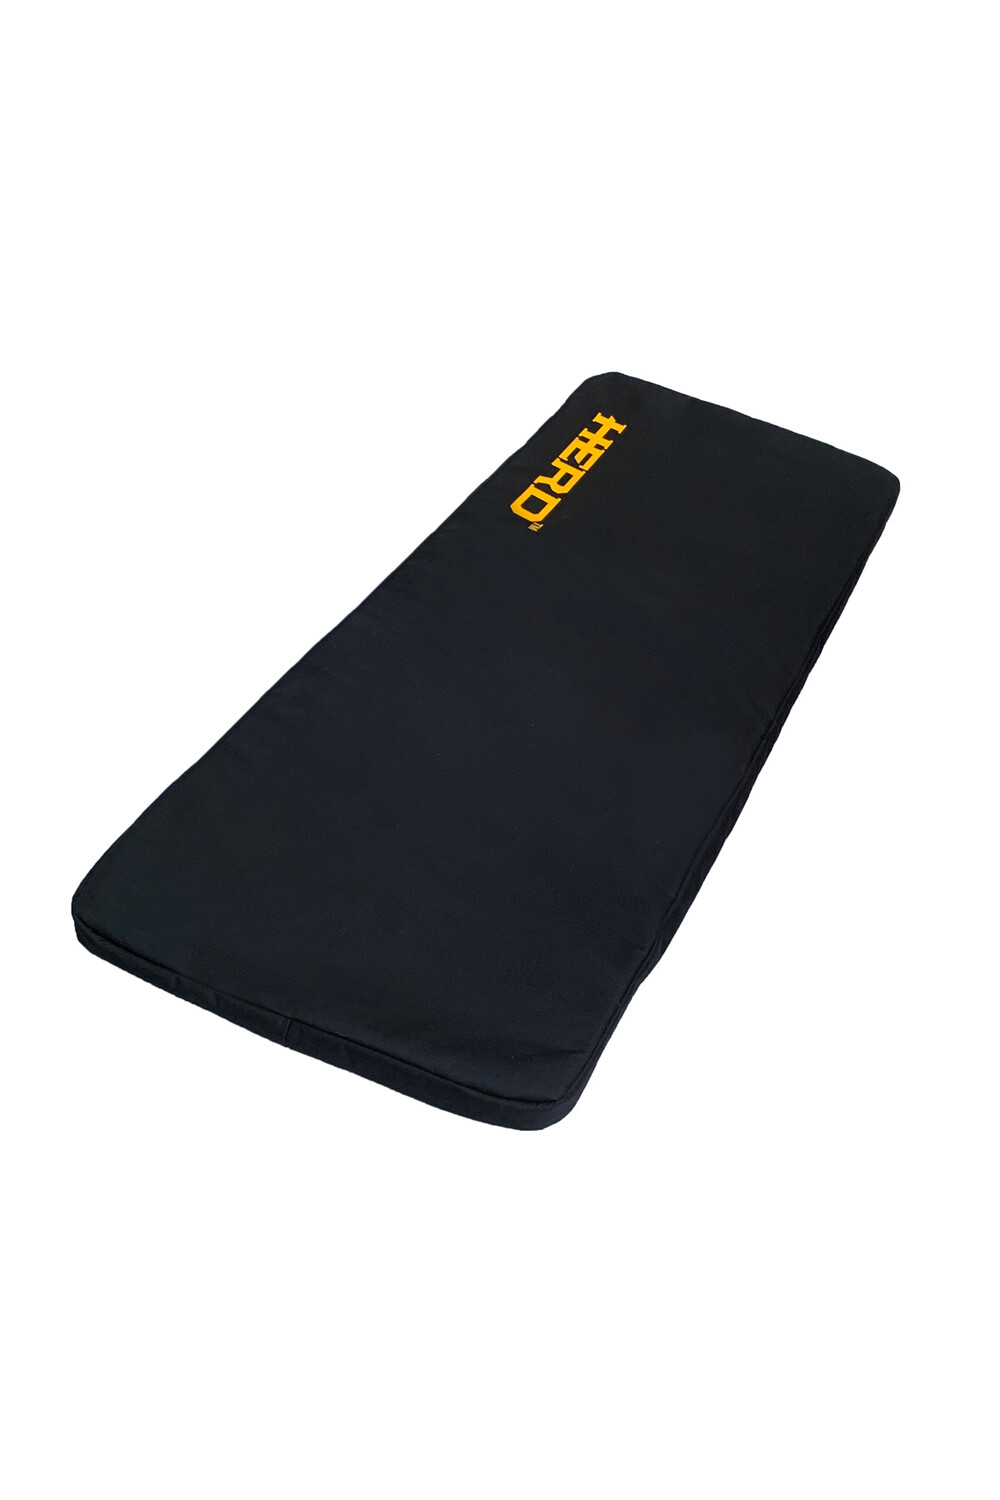 Individual Training Mat